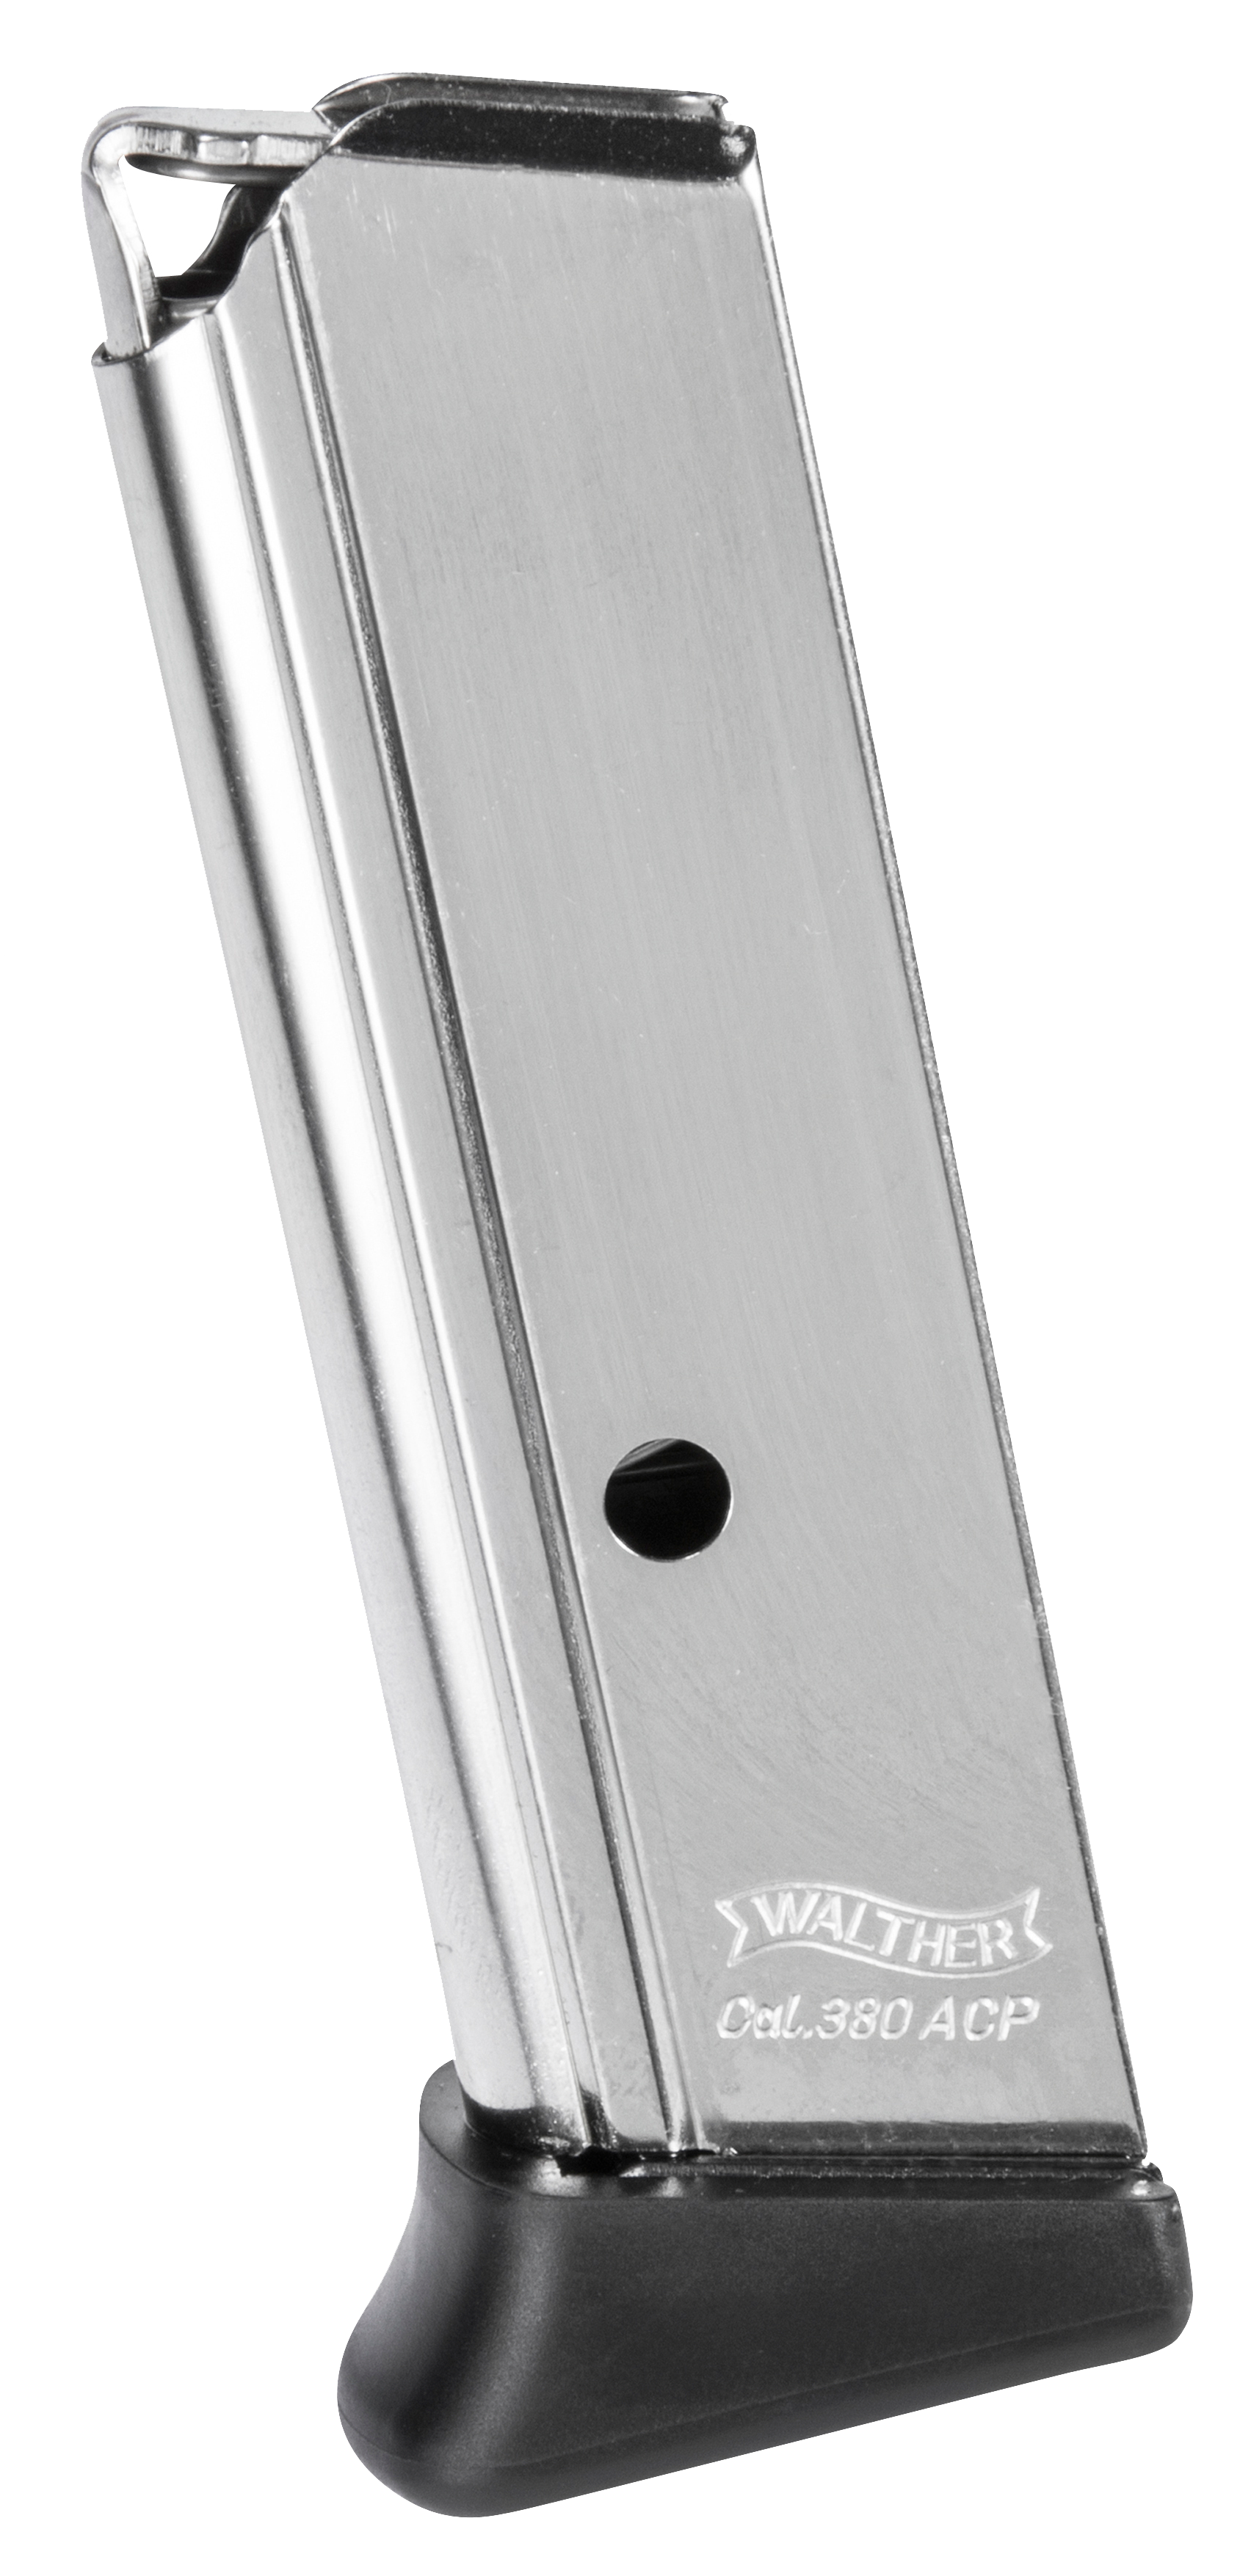 Walther Arms 2246012 PPK/S 380 ACP 7 rd Nickel Finish